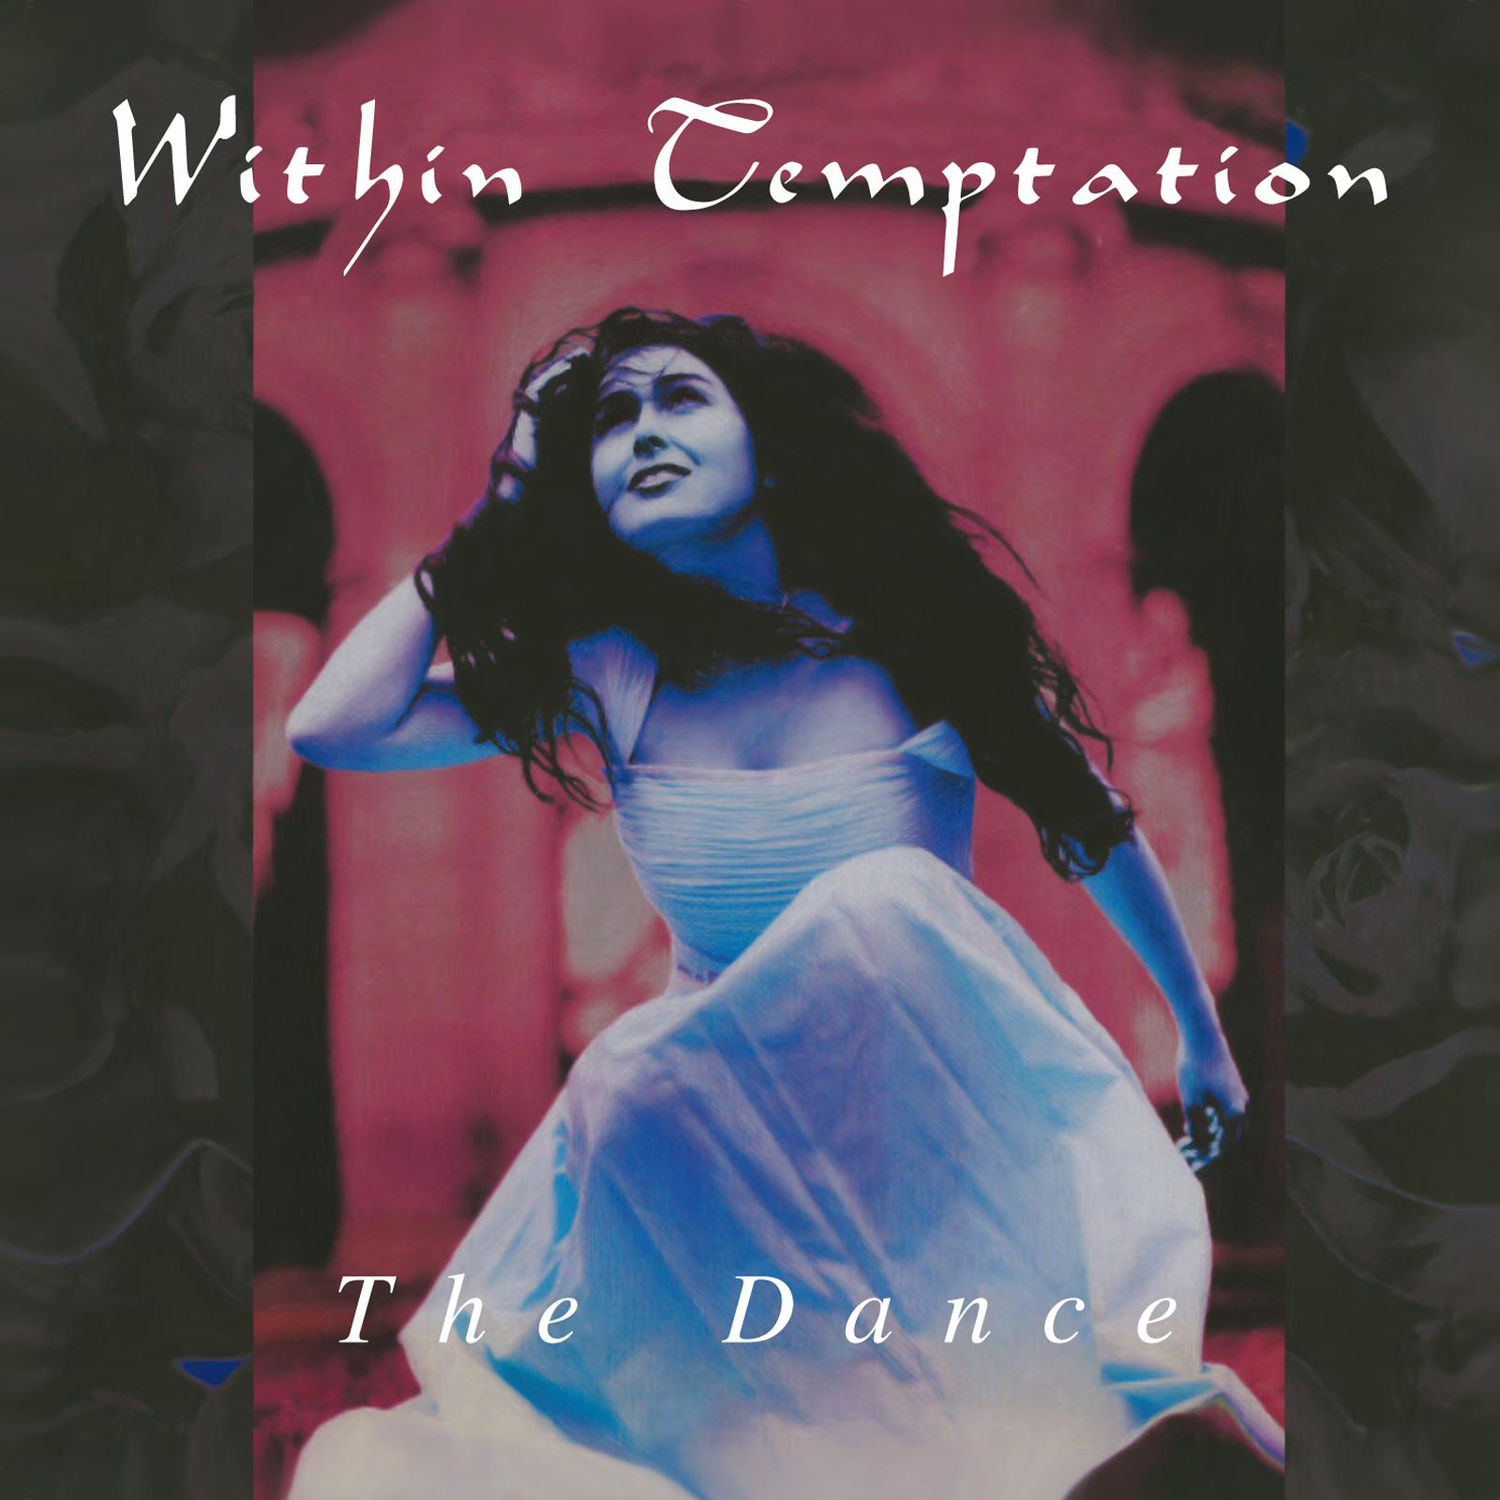 Within Temptation The Dance